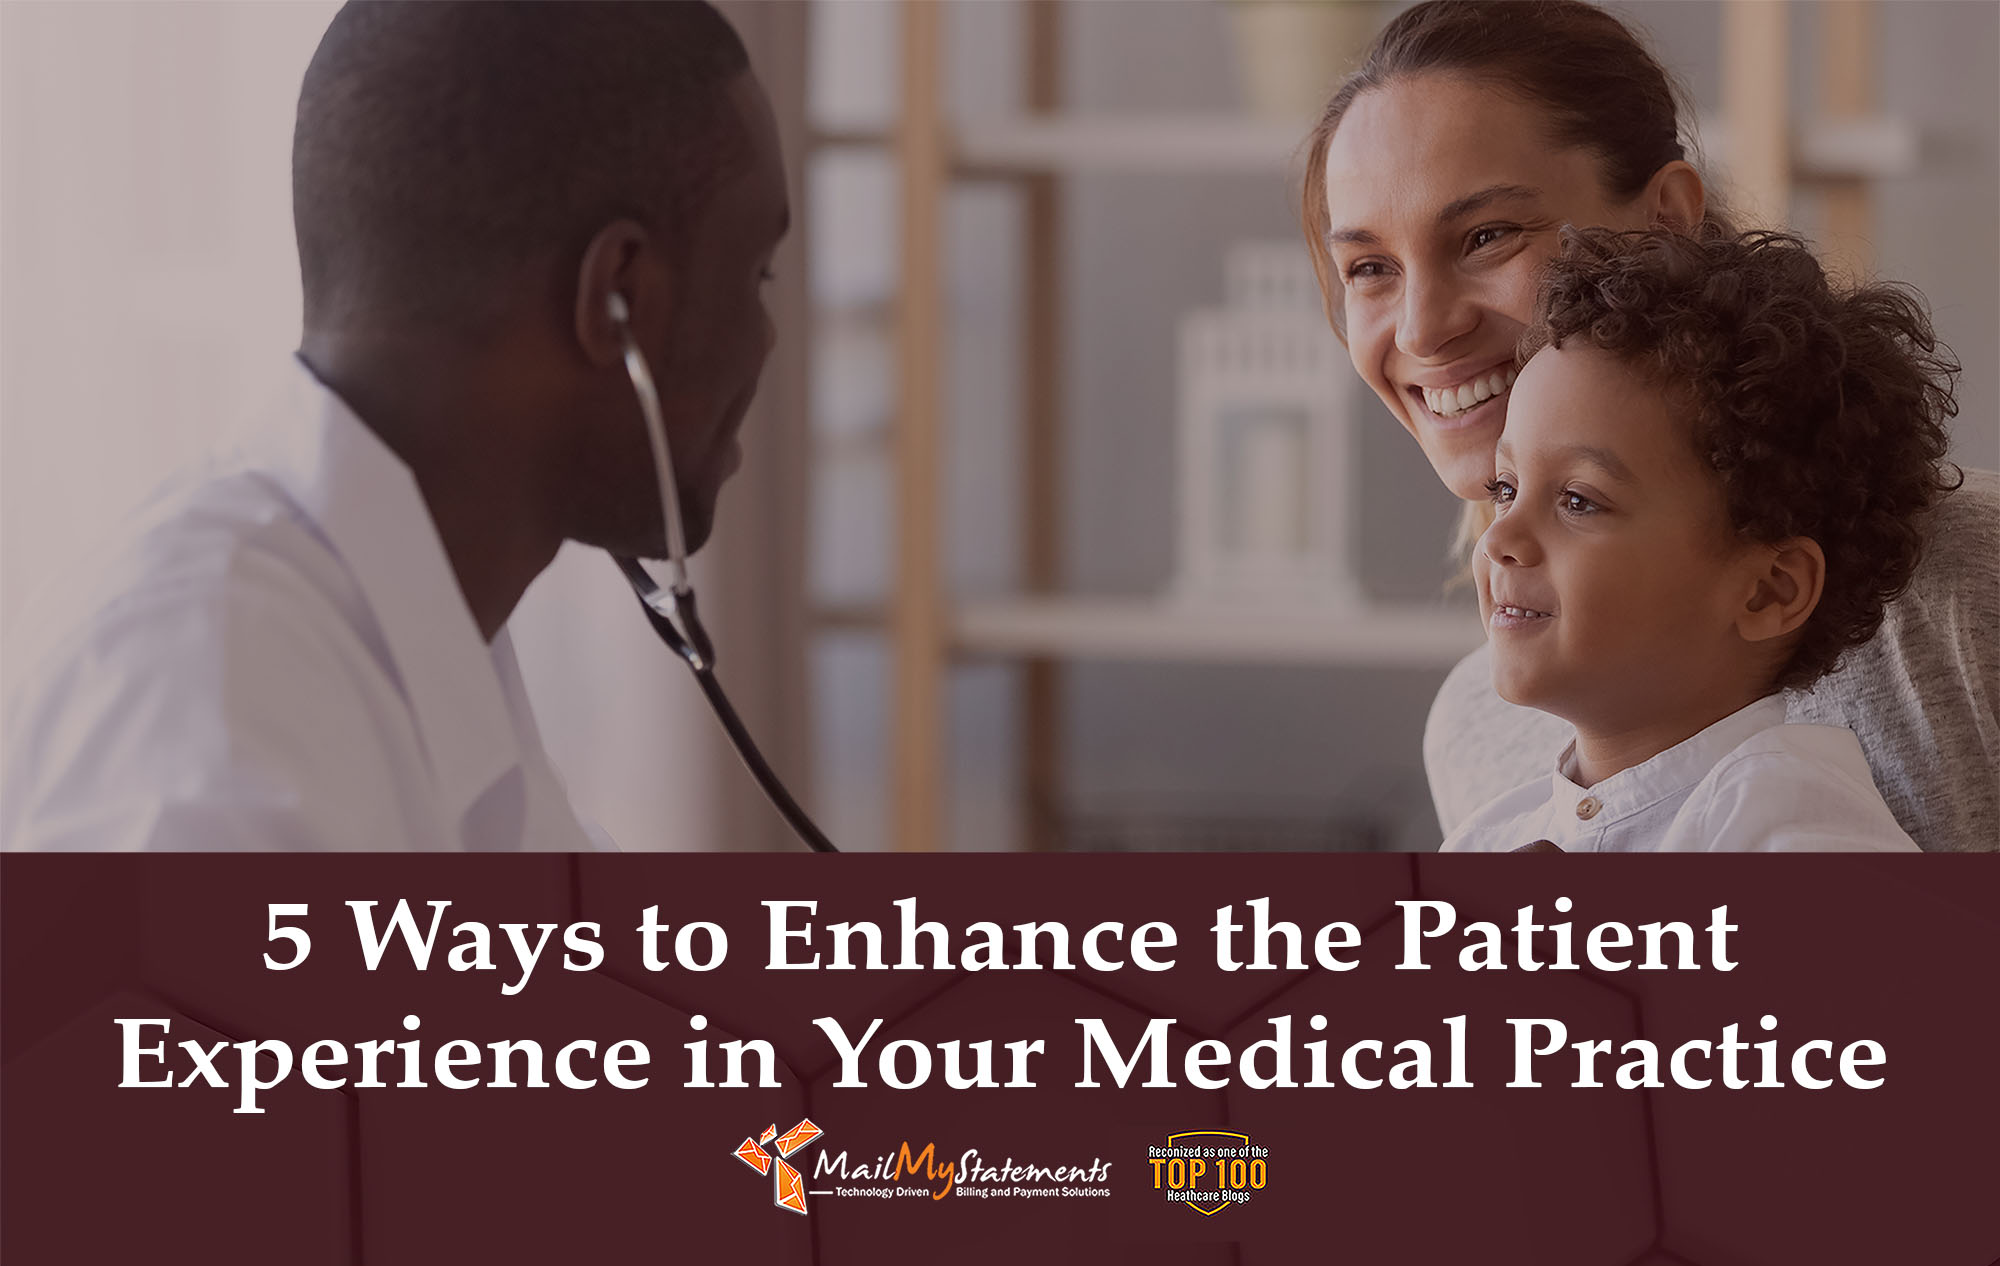 5 Ways to Enhance the Patient Experience in Your Medical Practice